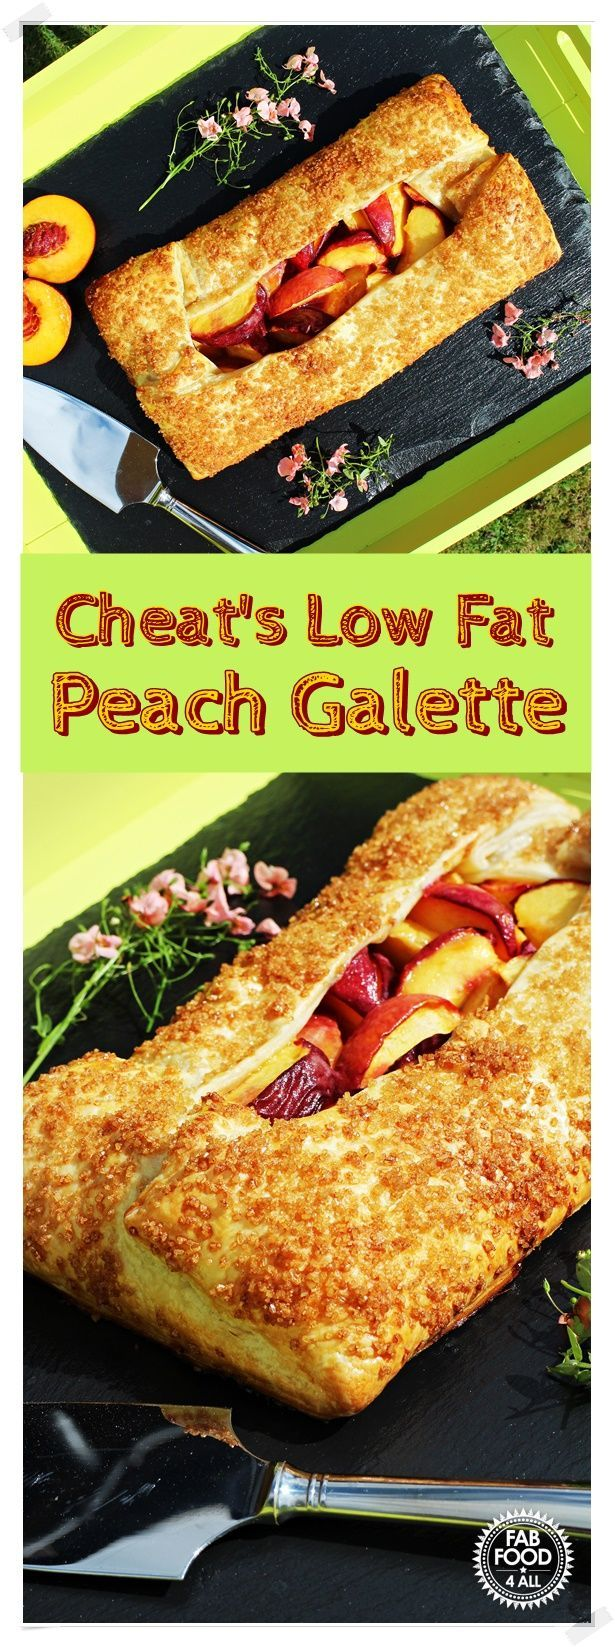 Cheat's Low Fat Peach Galette -  made with a pre-rolled sheet of light puff pastry this Galette is super quick and delicious! @FabFood4All